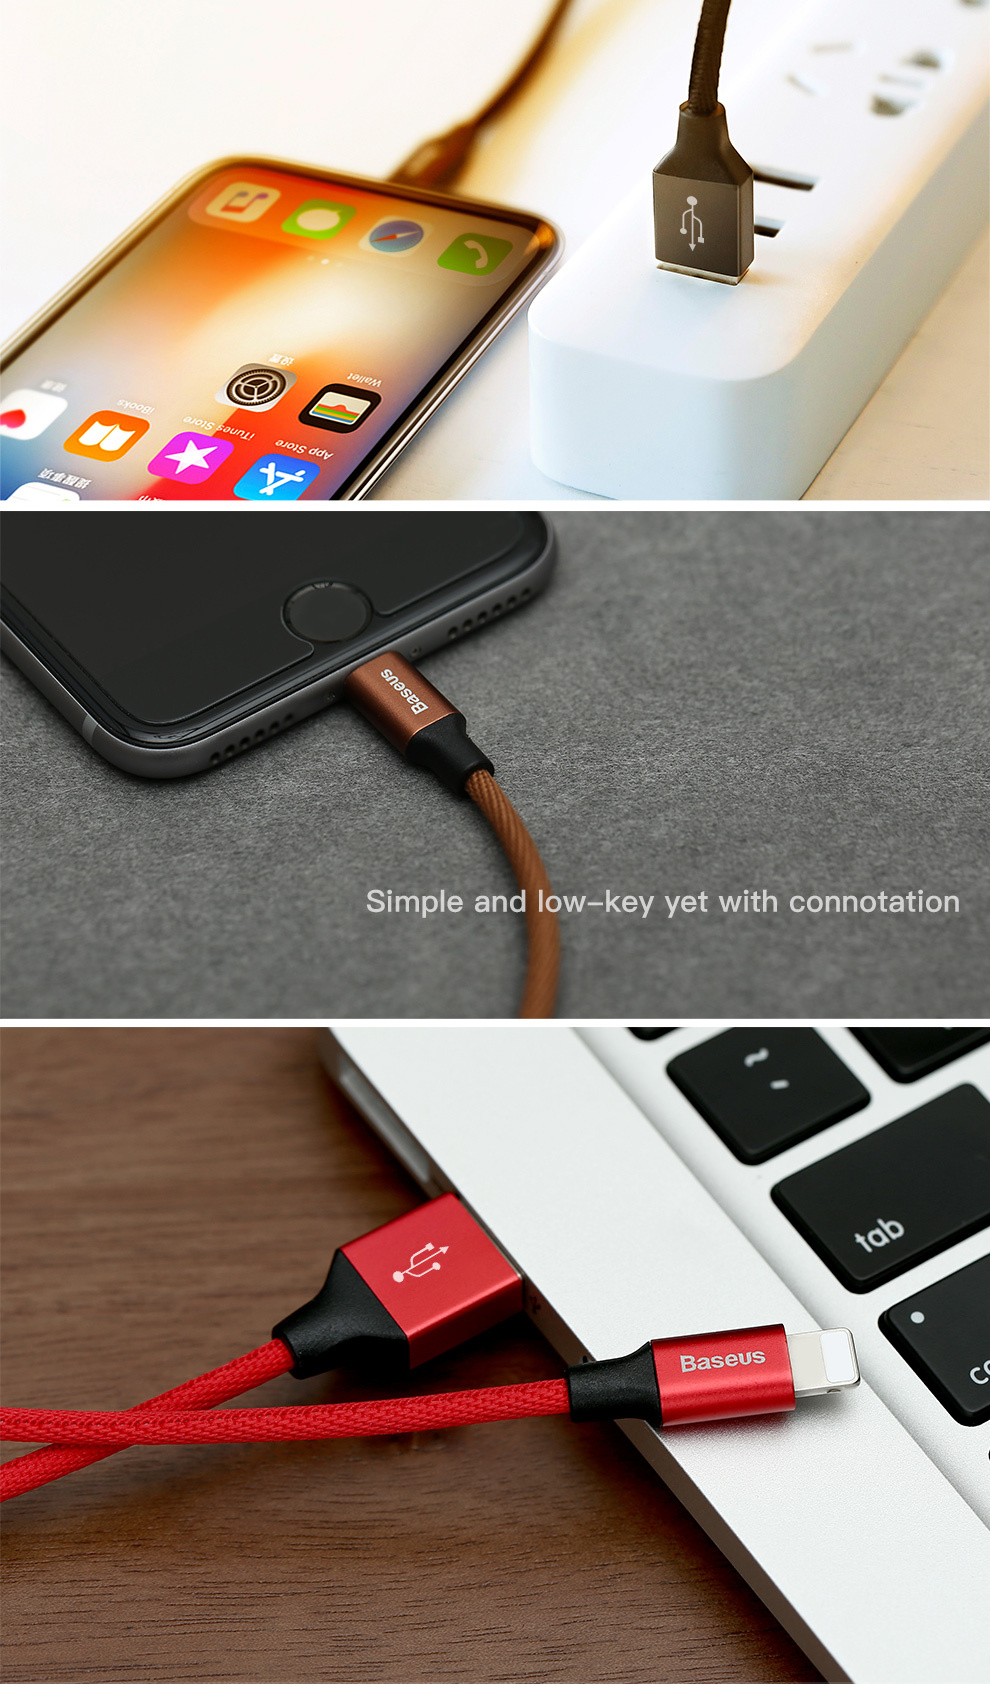 Baseus USB Cable For iPhone Xs Max Xr X 11 8 7 6 6s 5s iPad Fast Charging Charger Mobile Phone Cable For iPhone Wire Cord 3m 5m 20